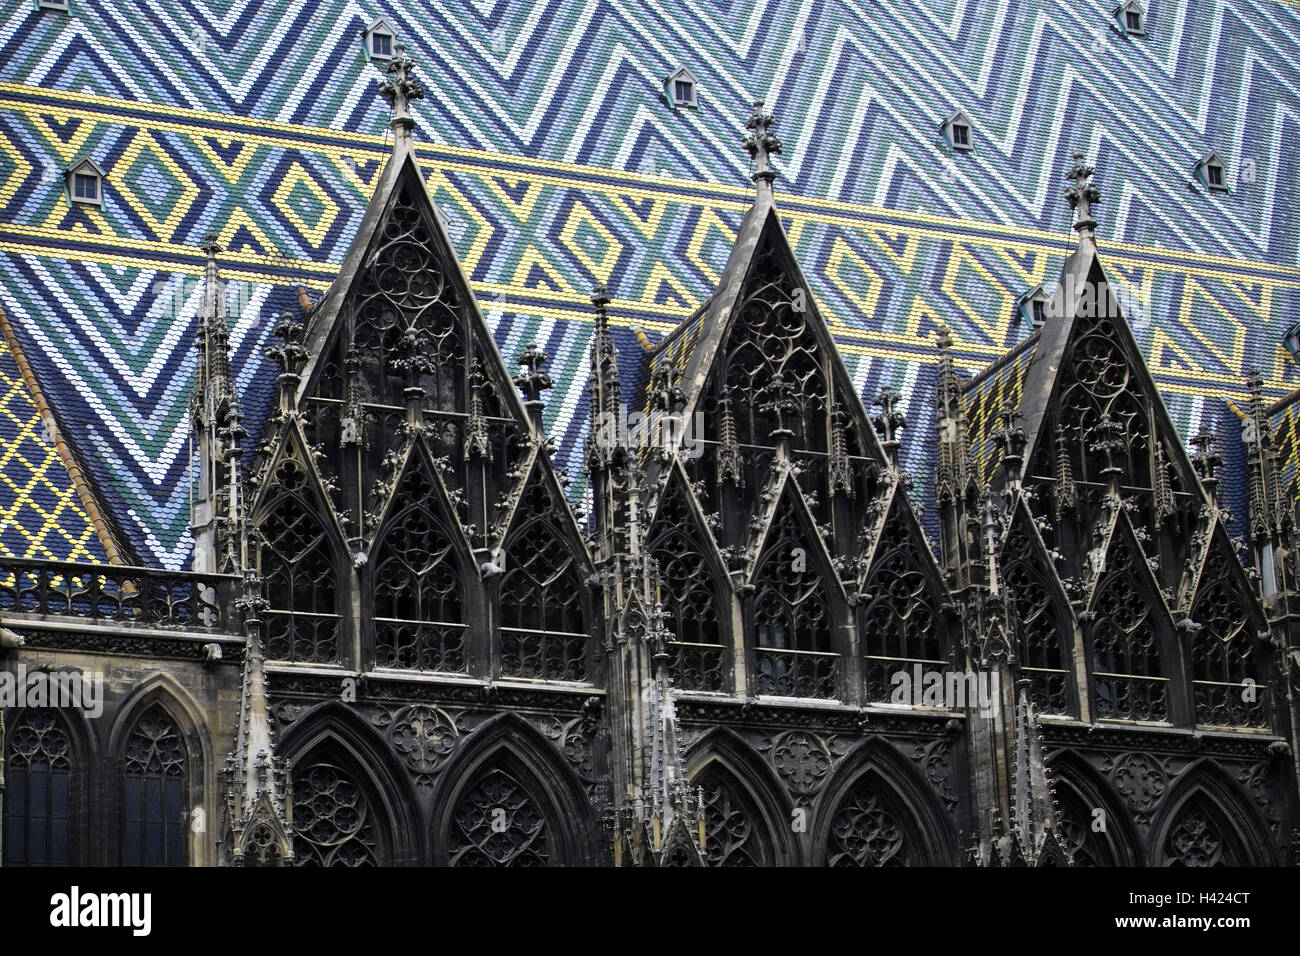 Austria Vienna Stephansdom Detail Gable Roof Sample Europe Town Capital Space Stephans Architecture Structure Landmark Church